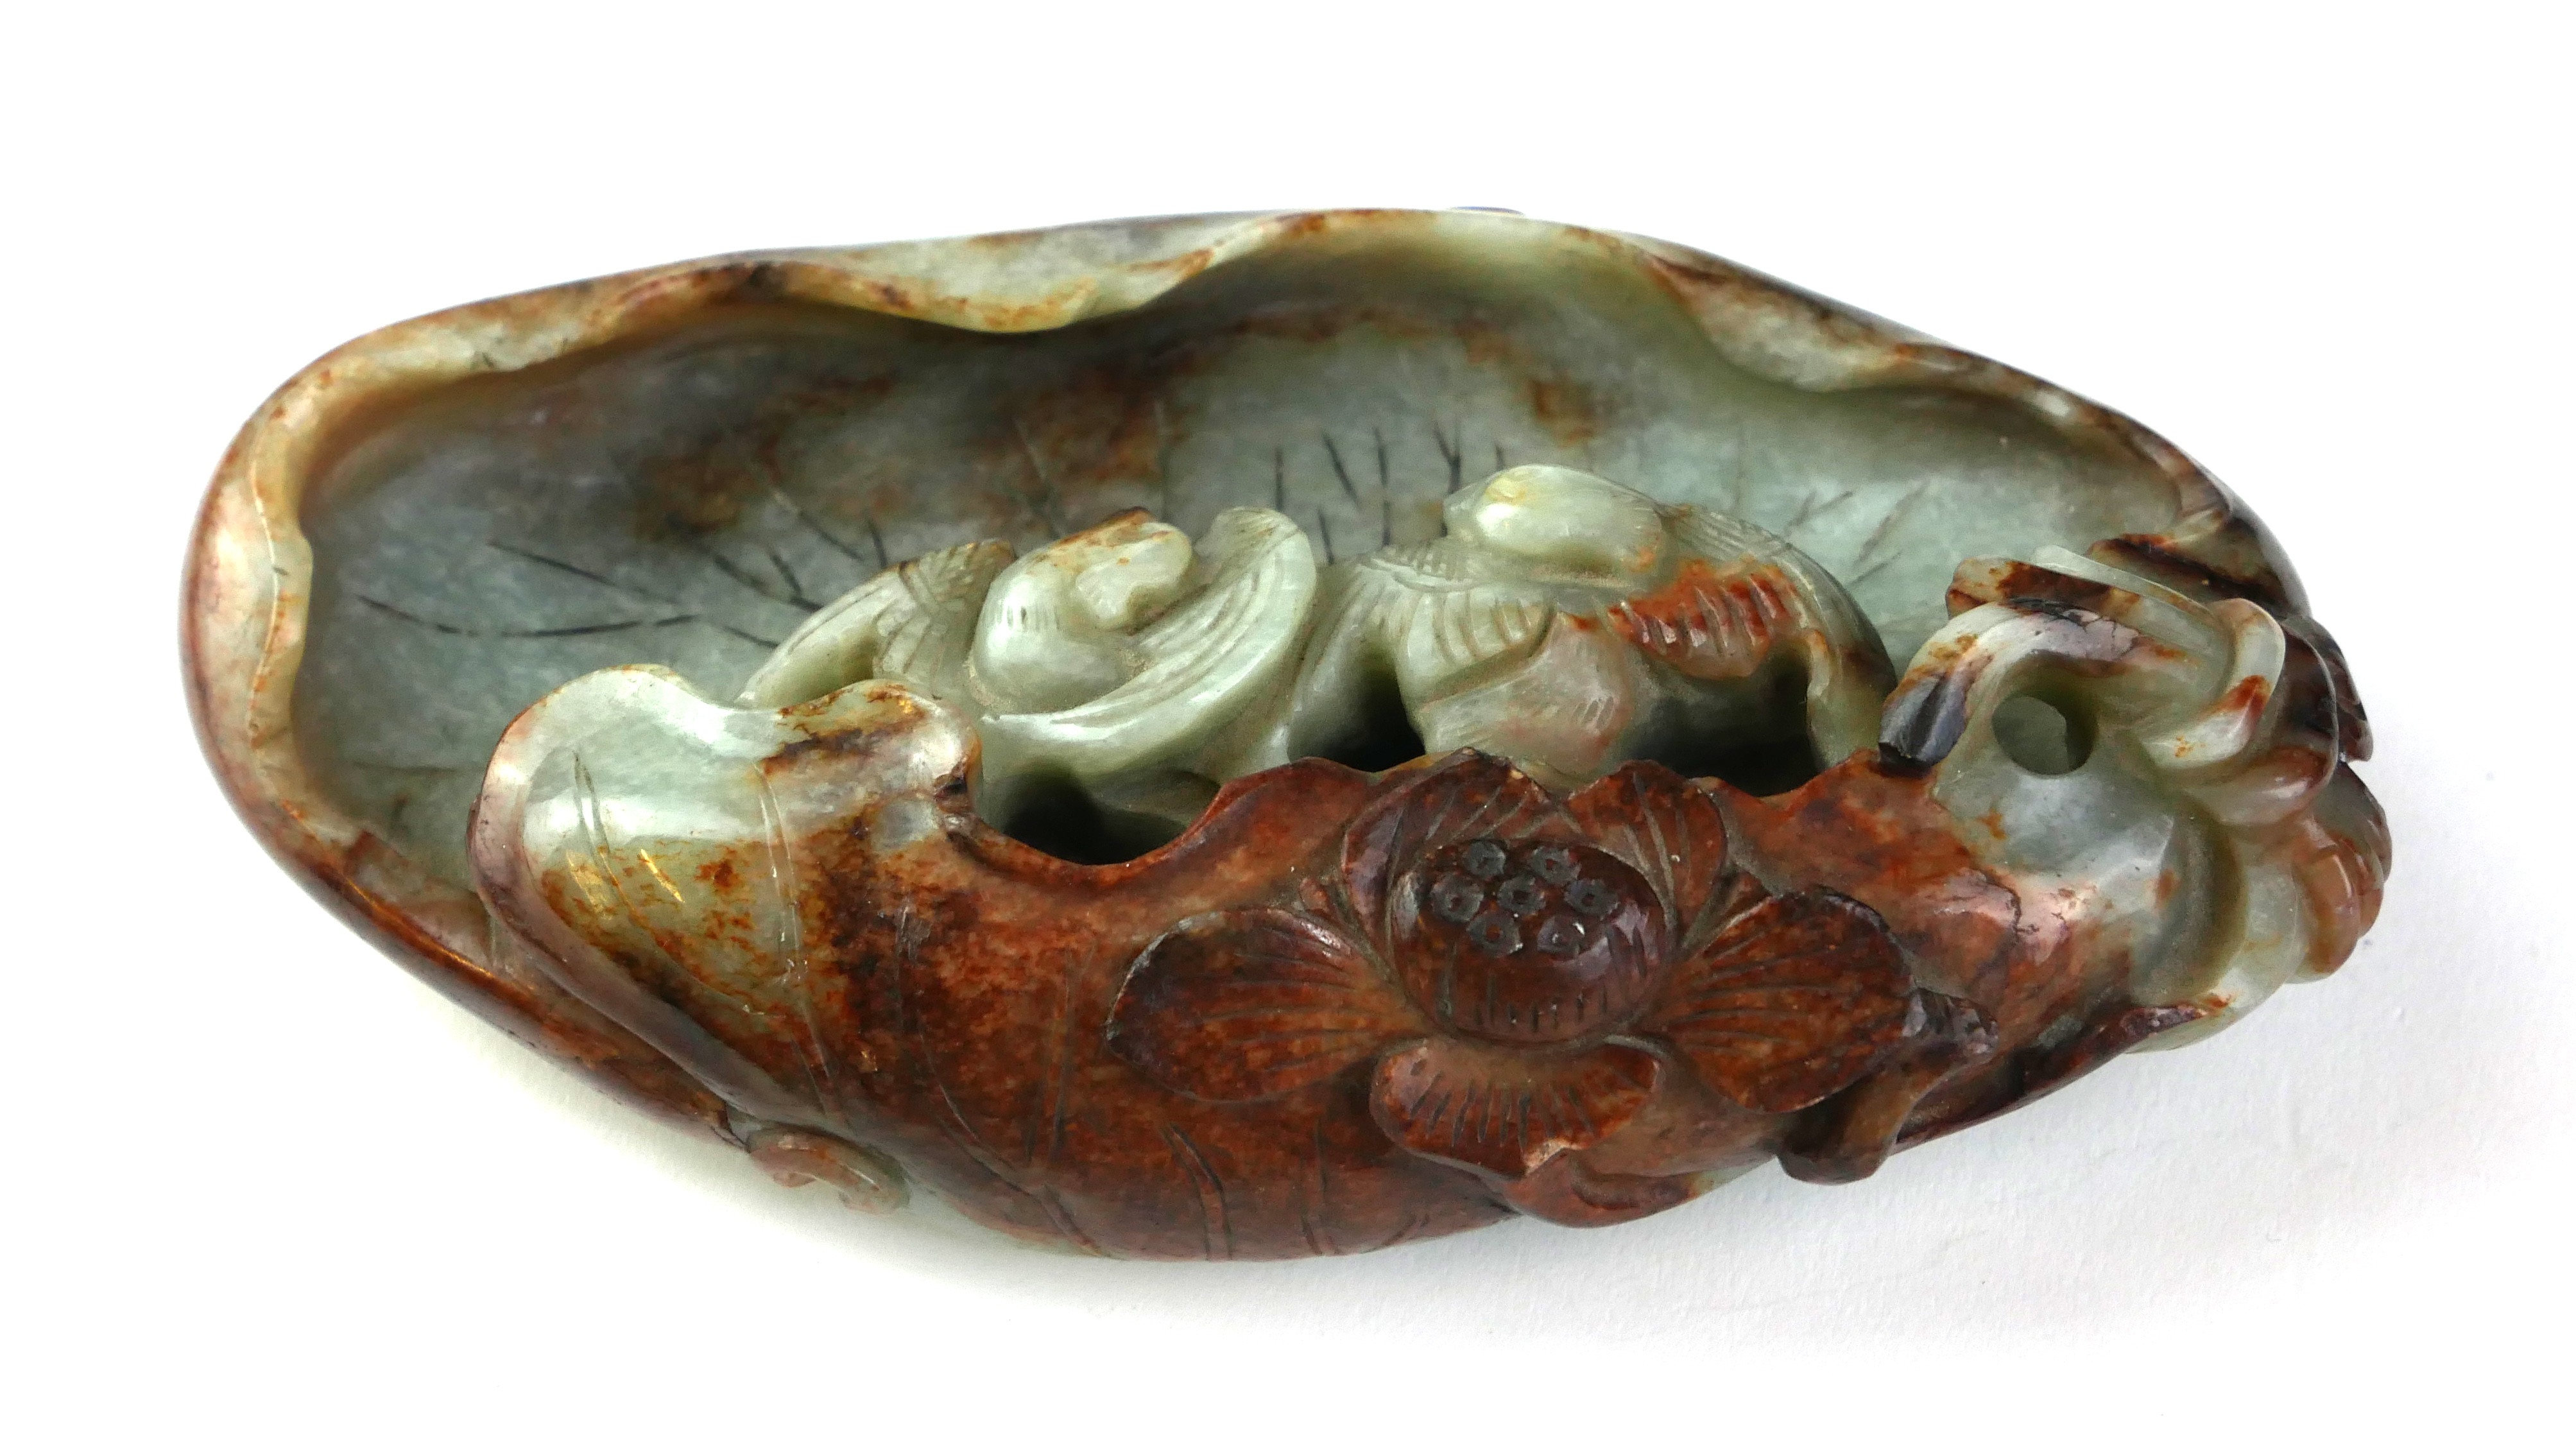 A CHINESE LATE MING /EARLY QING DYNASTY JADE SCULPTURE With organic form decoration of a pair of - Image 3 of 5